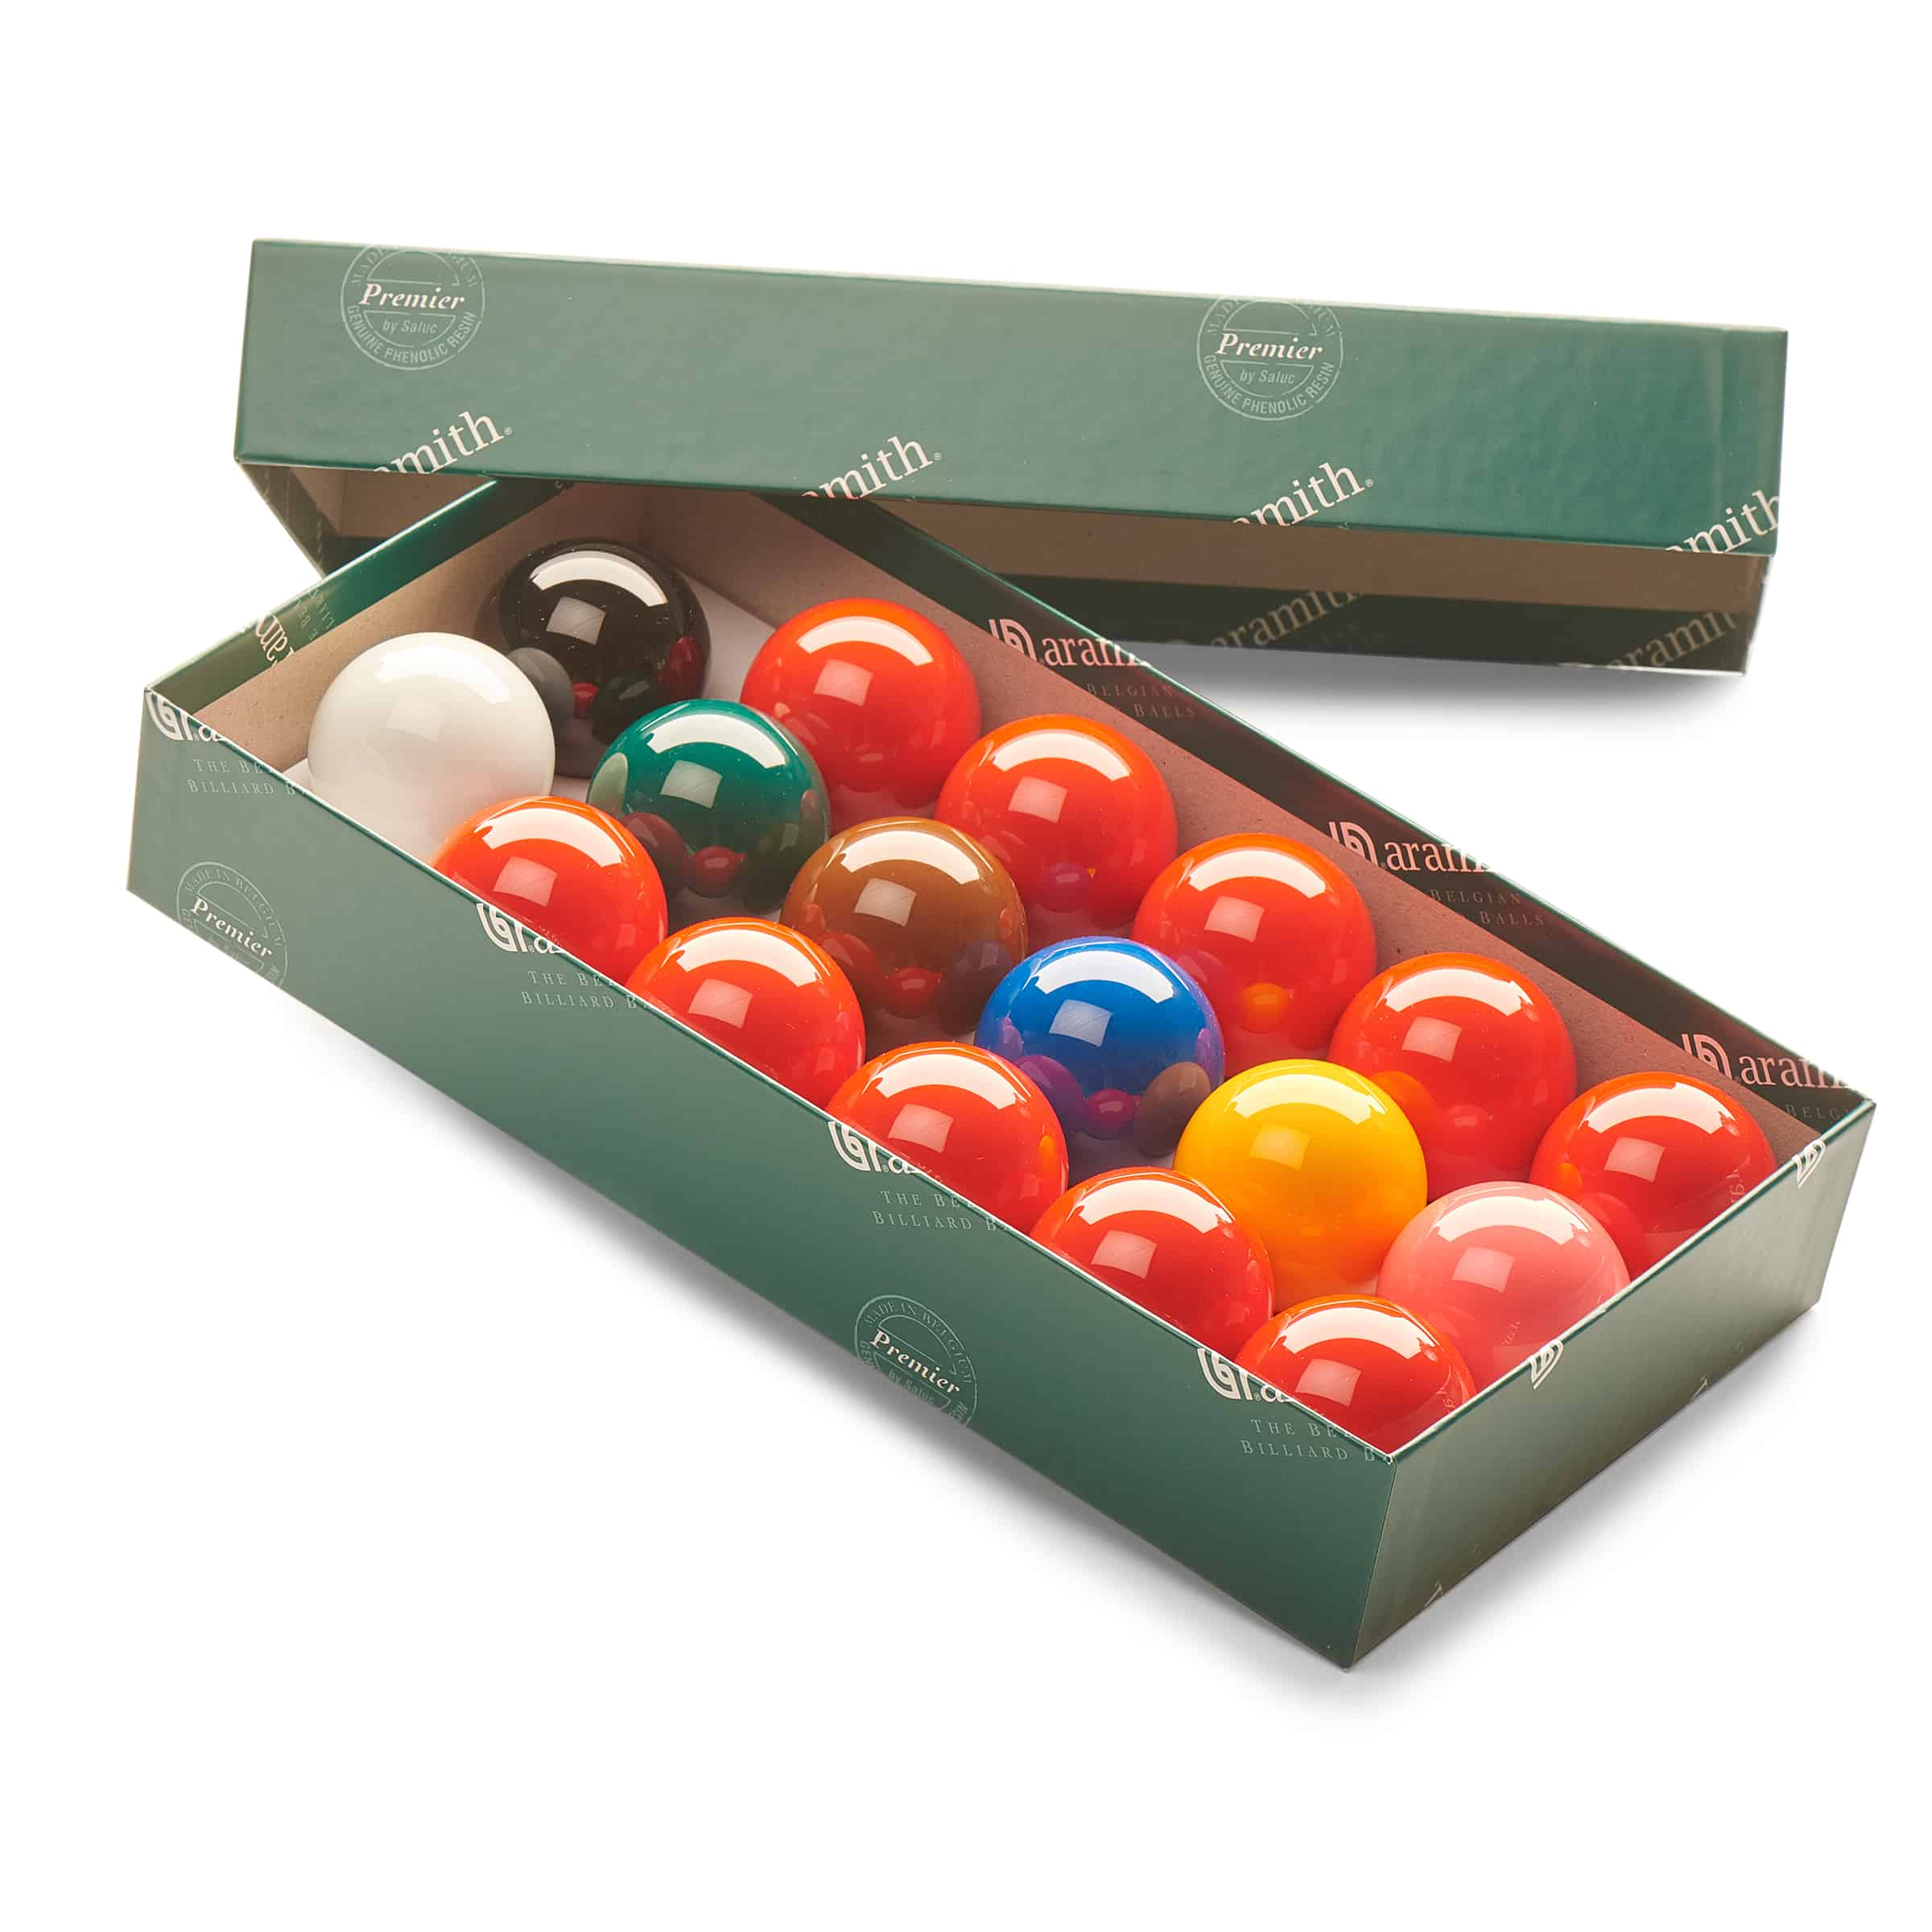 Incredible Aramith Premier Pro 2 Inch Tournament Quality Snooker Balls For A Coin Mech Pool Table Home Interior And Landscaping Ponolsignezvosmurscom